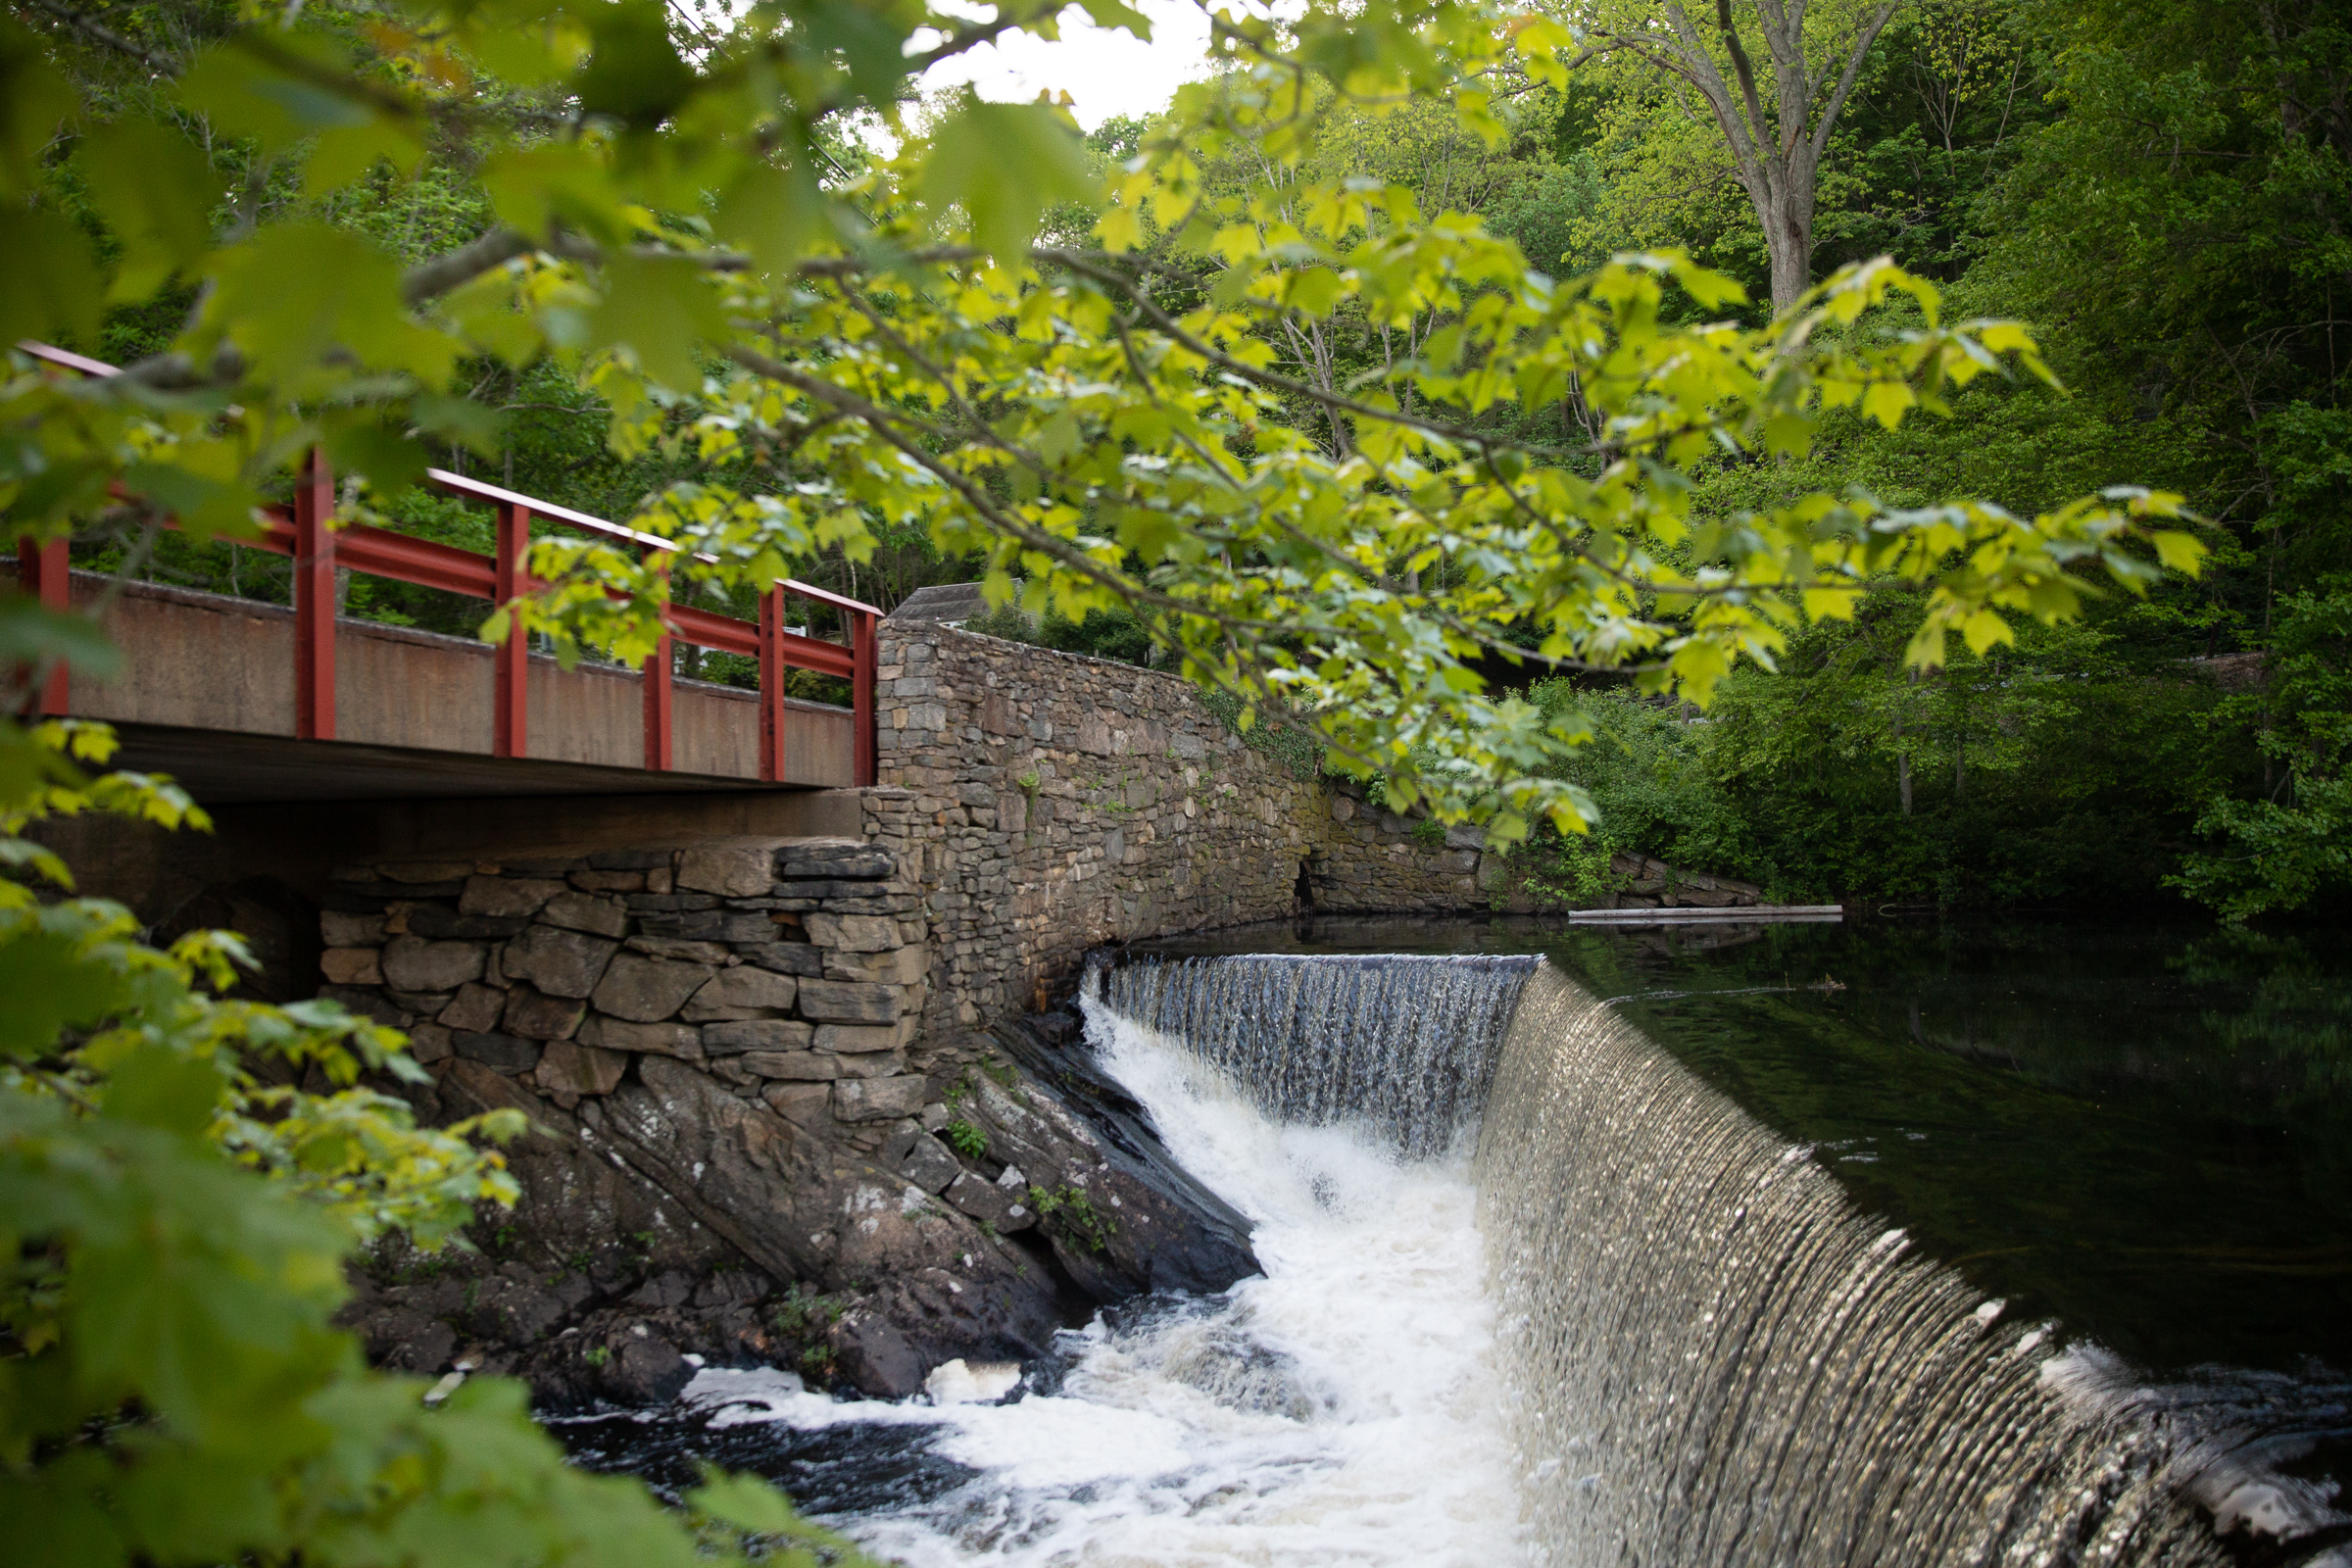 A dam on Moulson Pond along a section of the Eightmile River in Lyme, Connecticut. Photo by Ryan Caron King for Connecticut Public